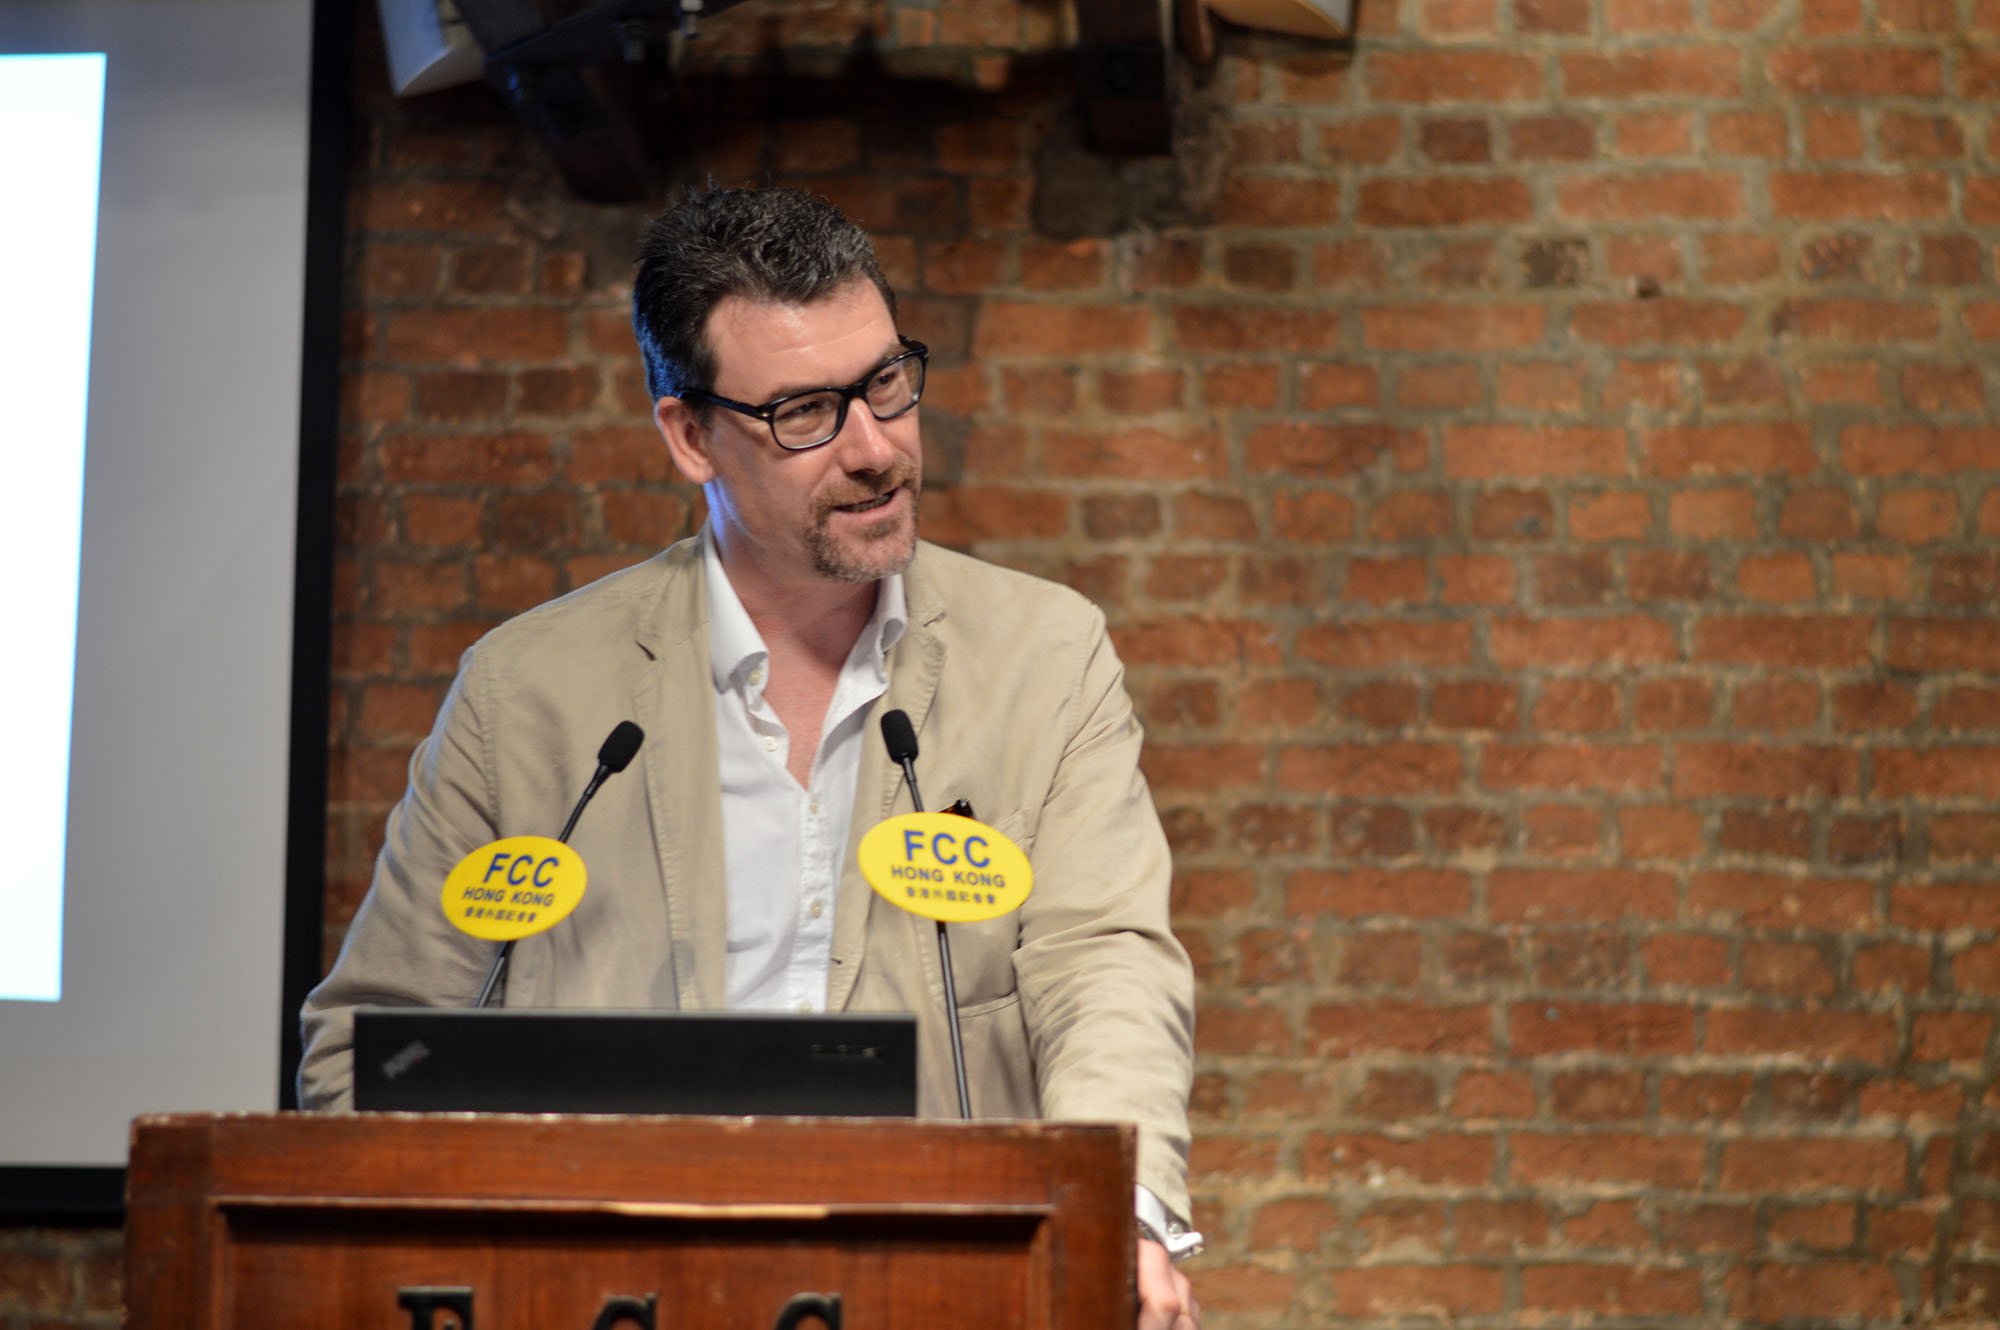 Acclaimed writer Paul French recounts tales from old Shanghai at the FCC. Photo: Sarah Graham/FCC